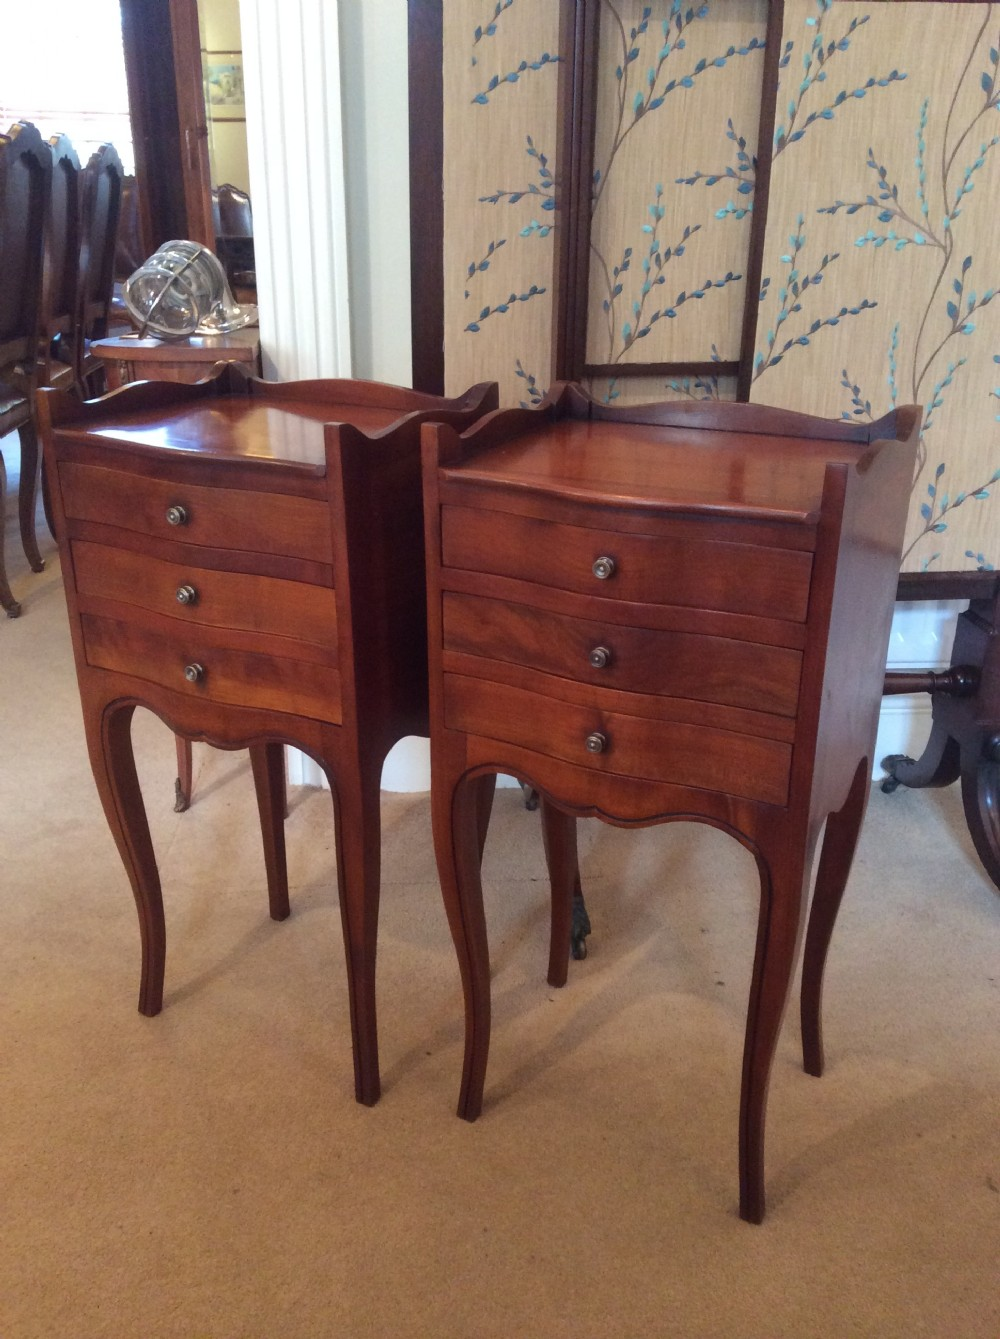 Old Bedside Table: Pair Of French Antique Bedside Tables